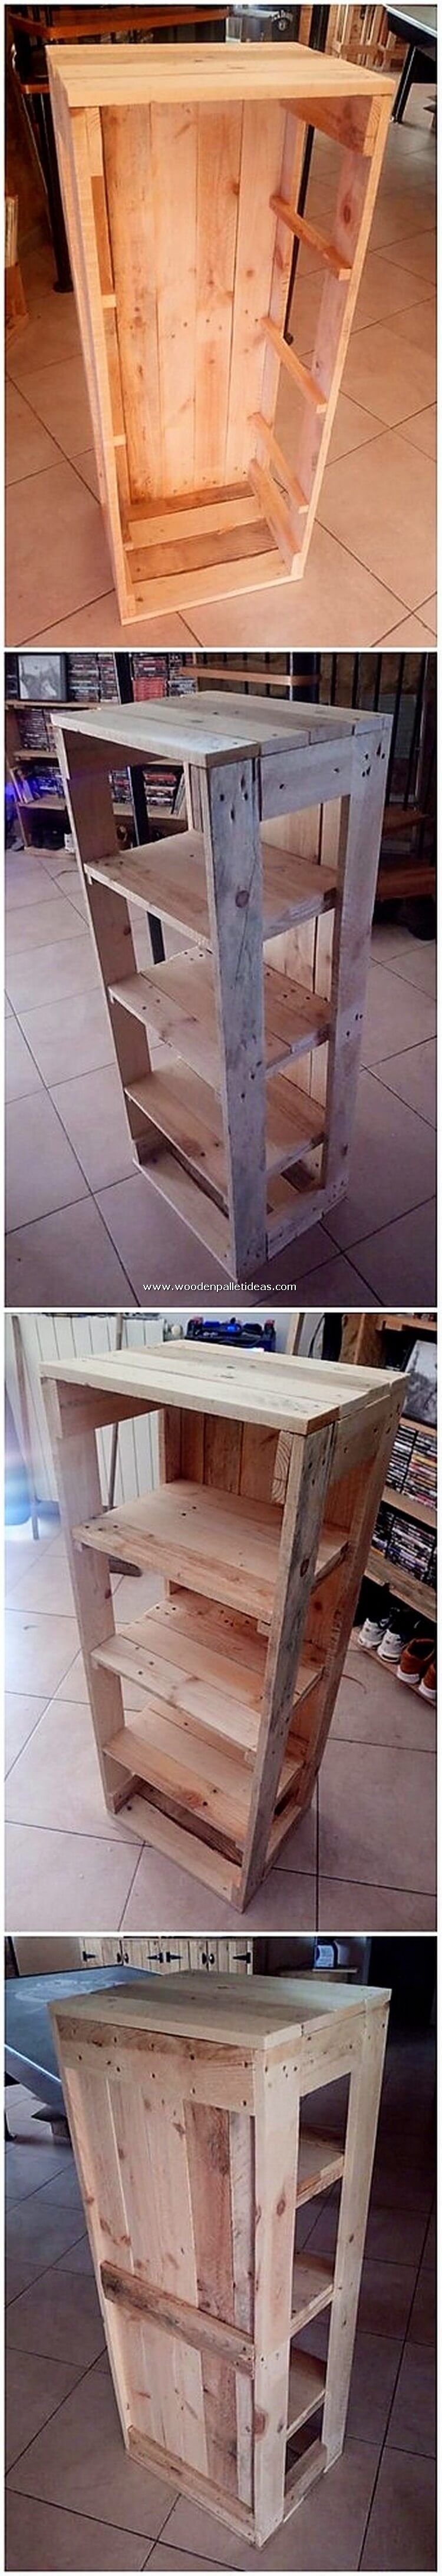 Pallet-Shelving-Stand-2